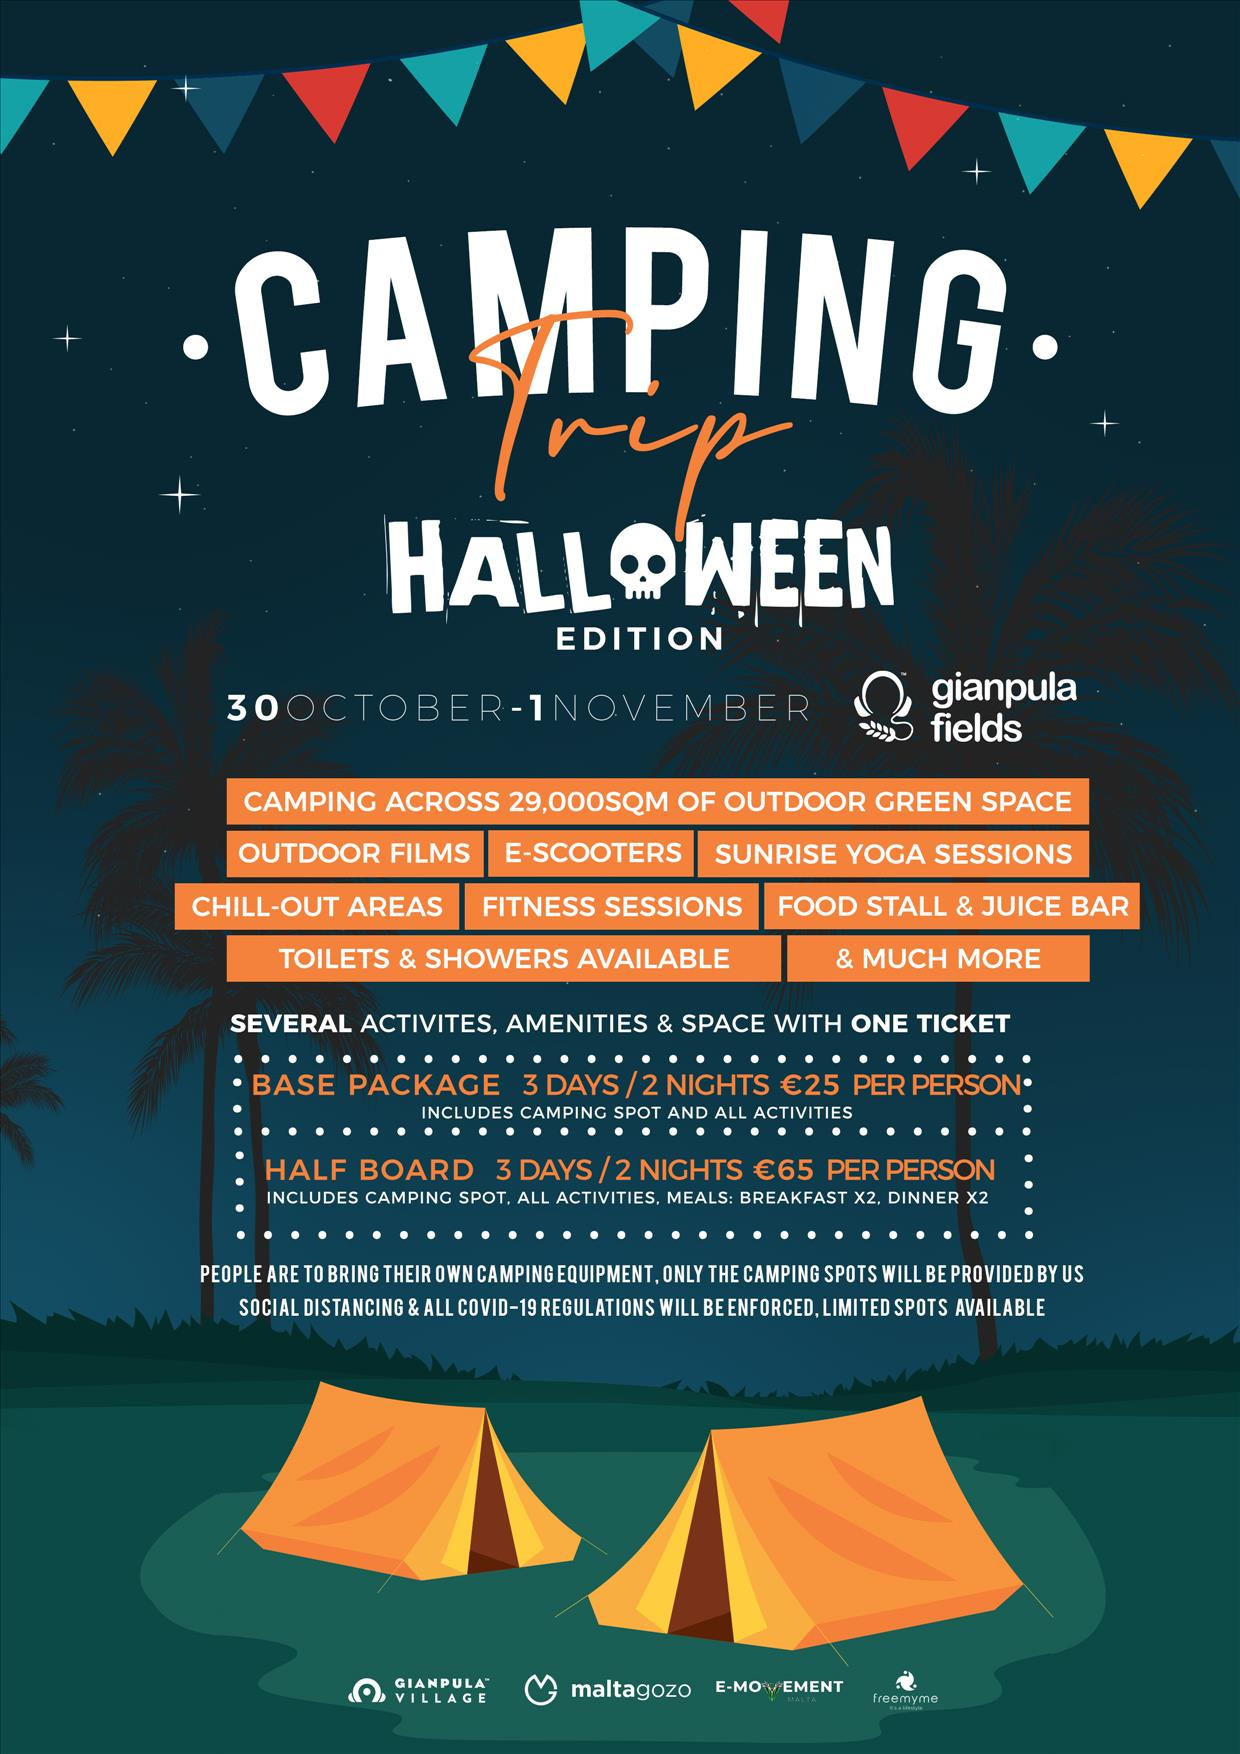 Camping Trip Halloween Edition flyer